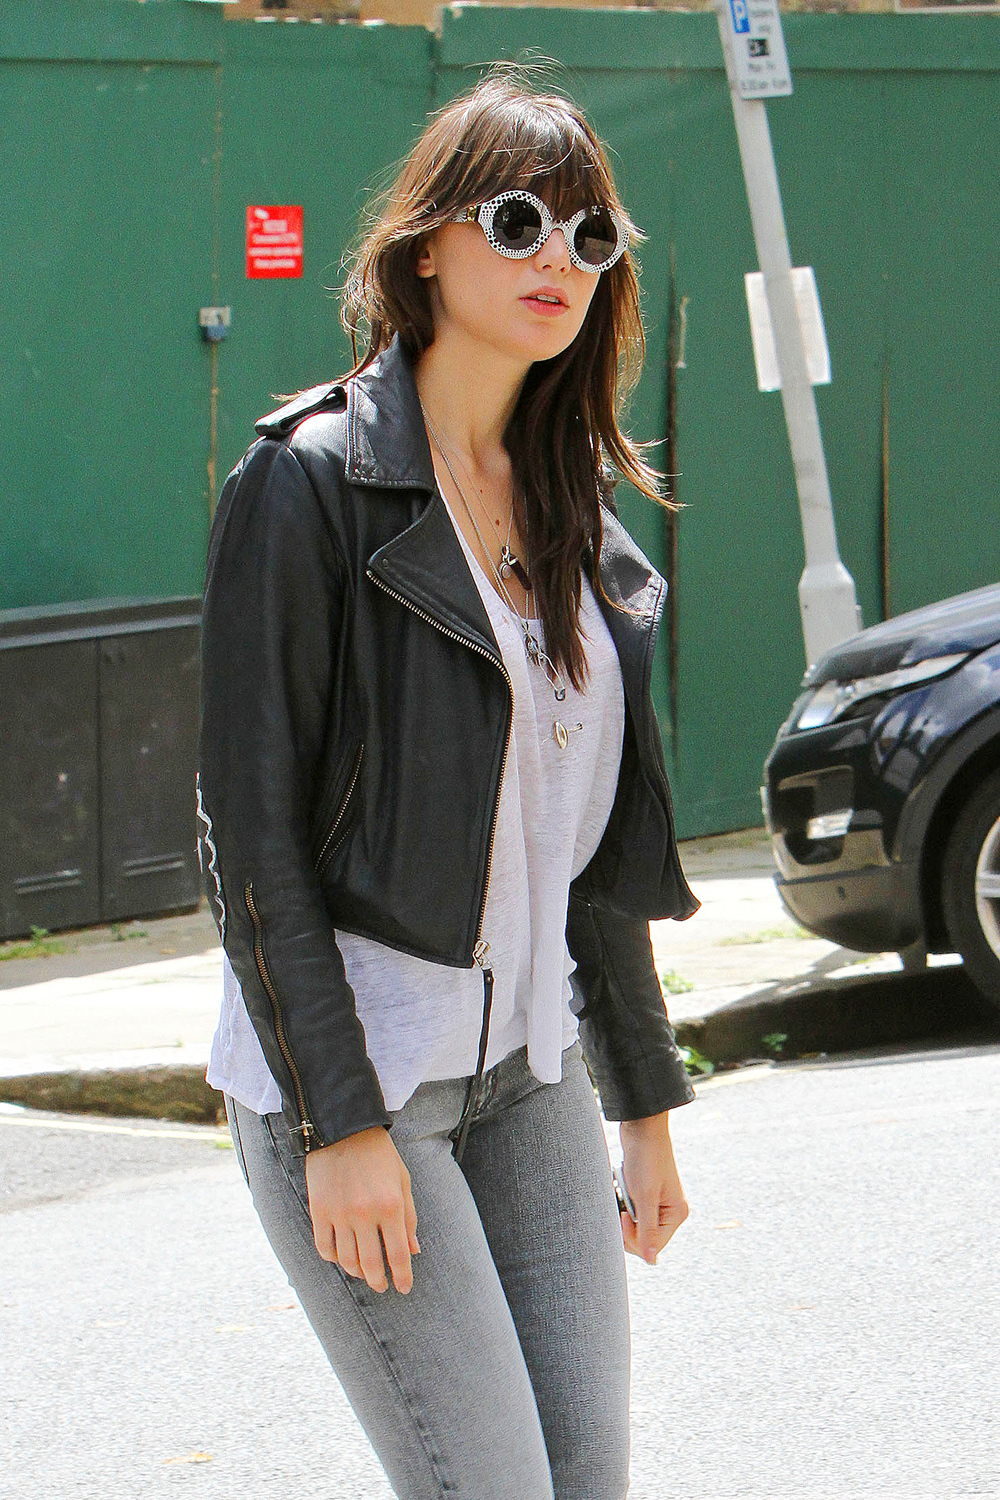 Daisy Lowe out and about near her home in North London 12.7.2012